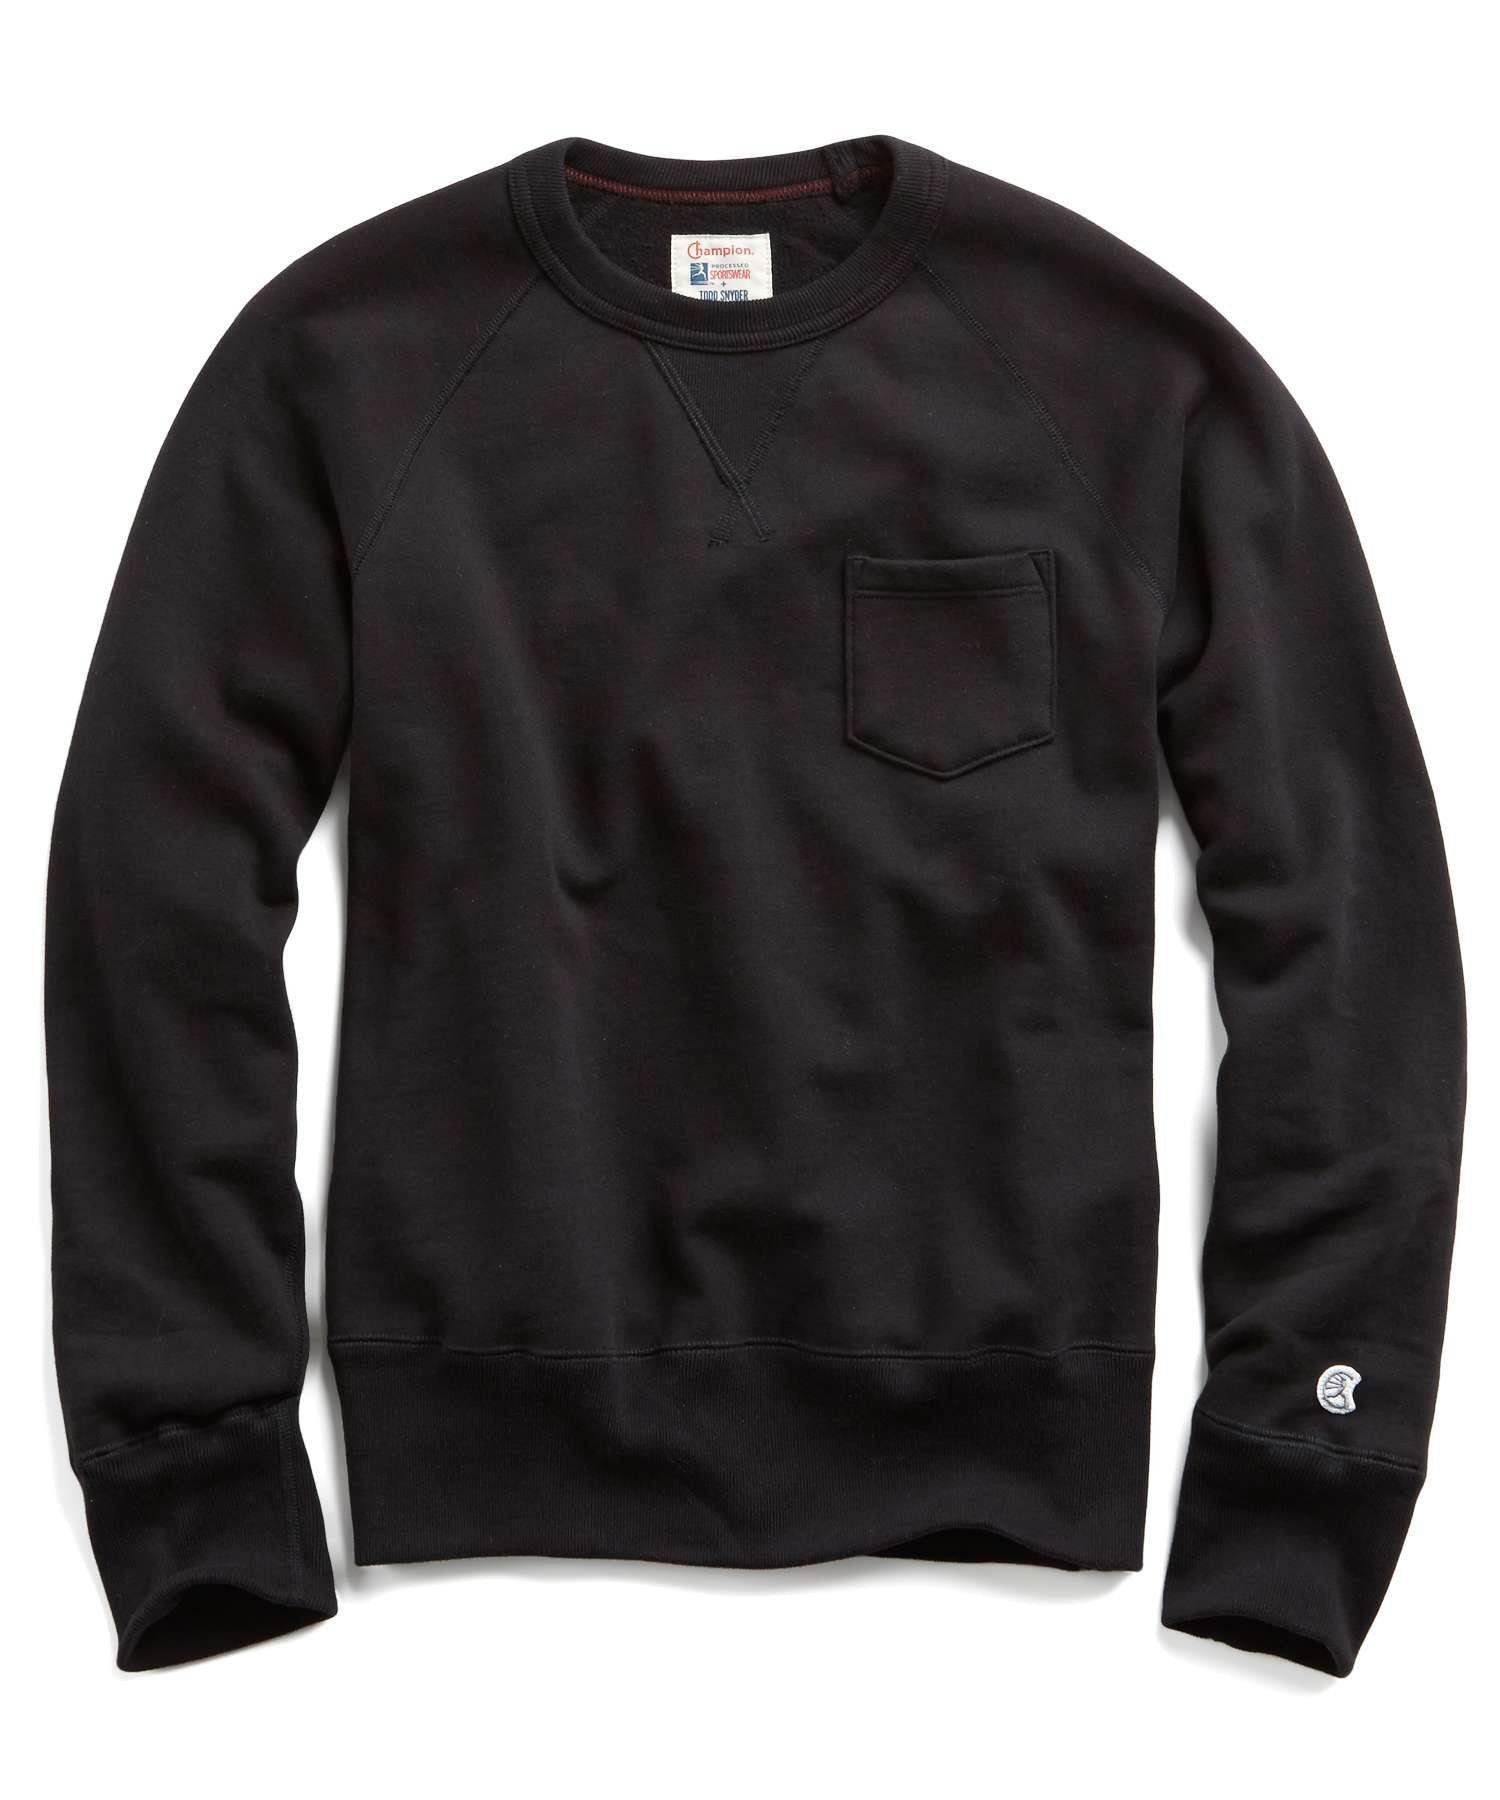 Heavyweight Pocket Sweatshirt in Black